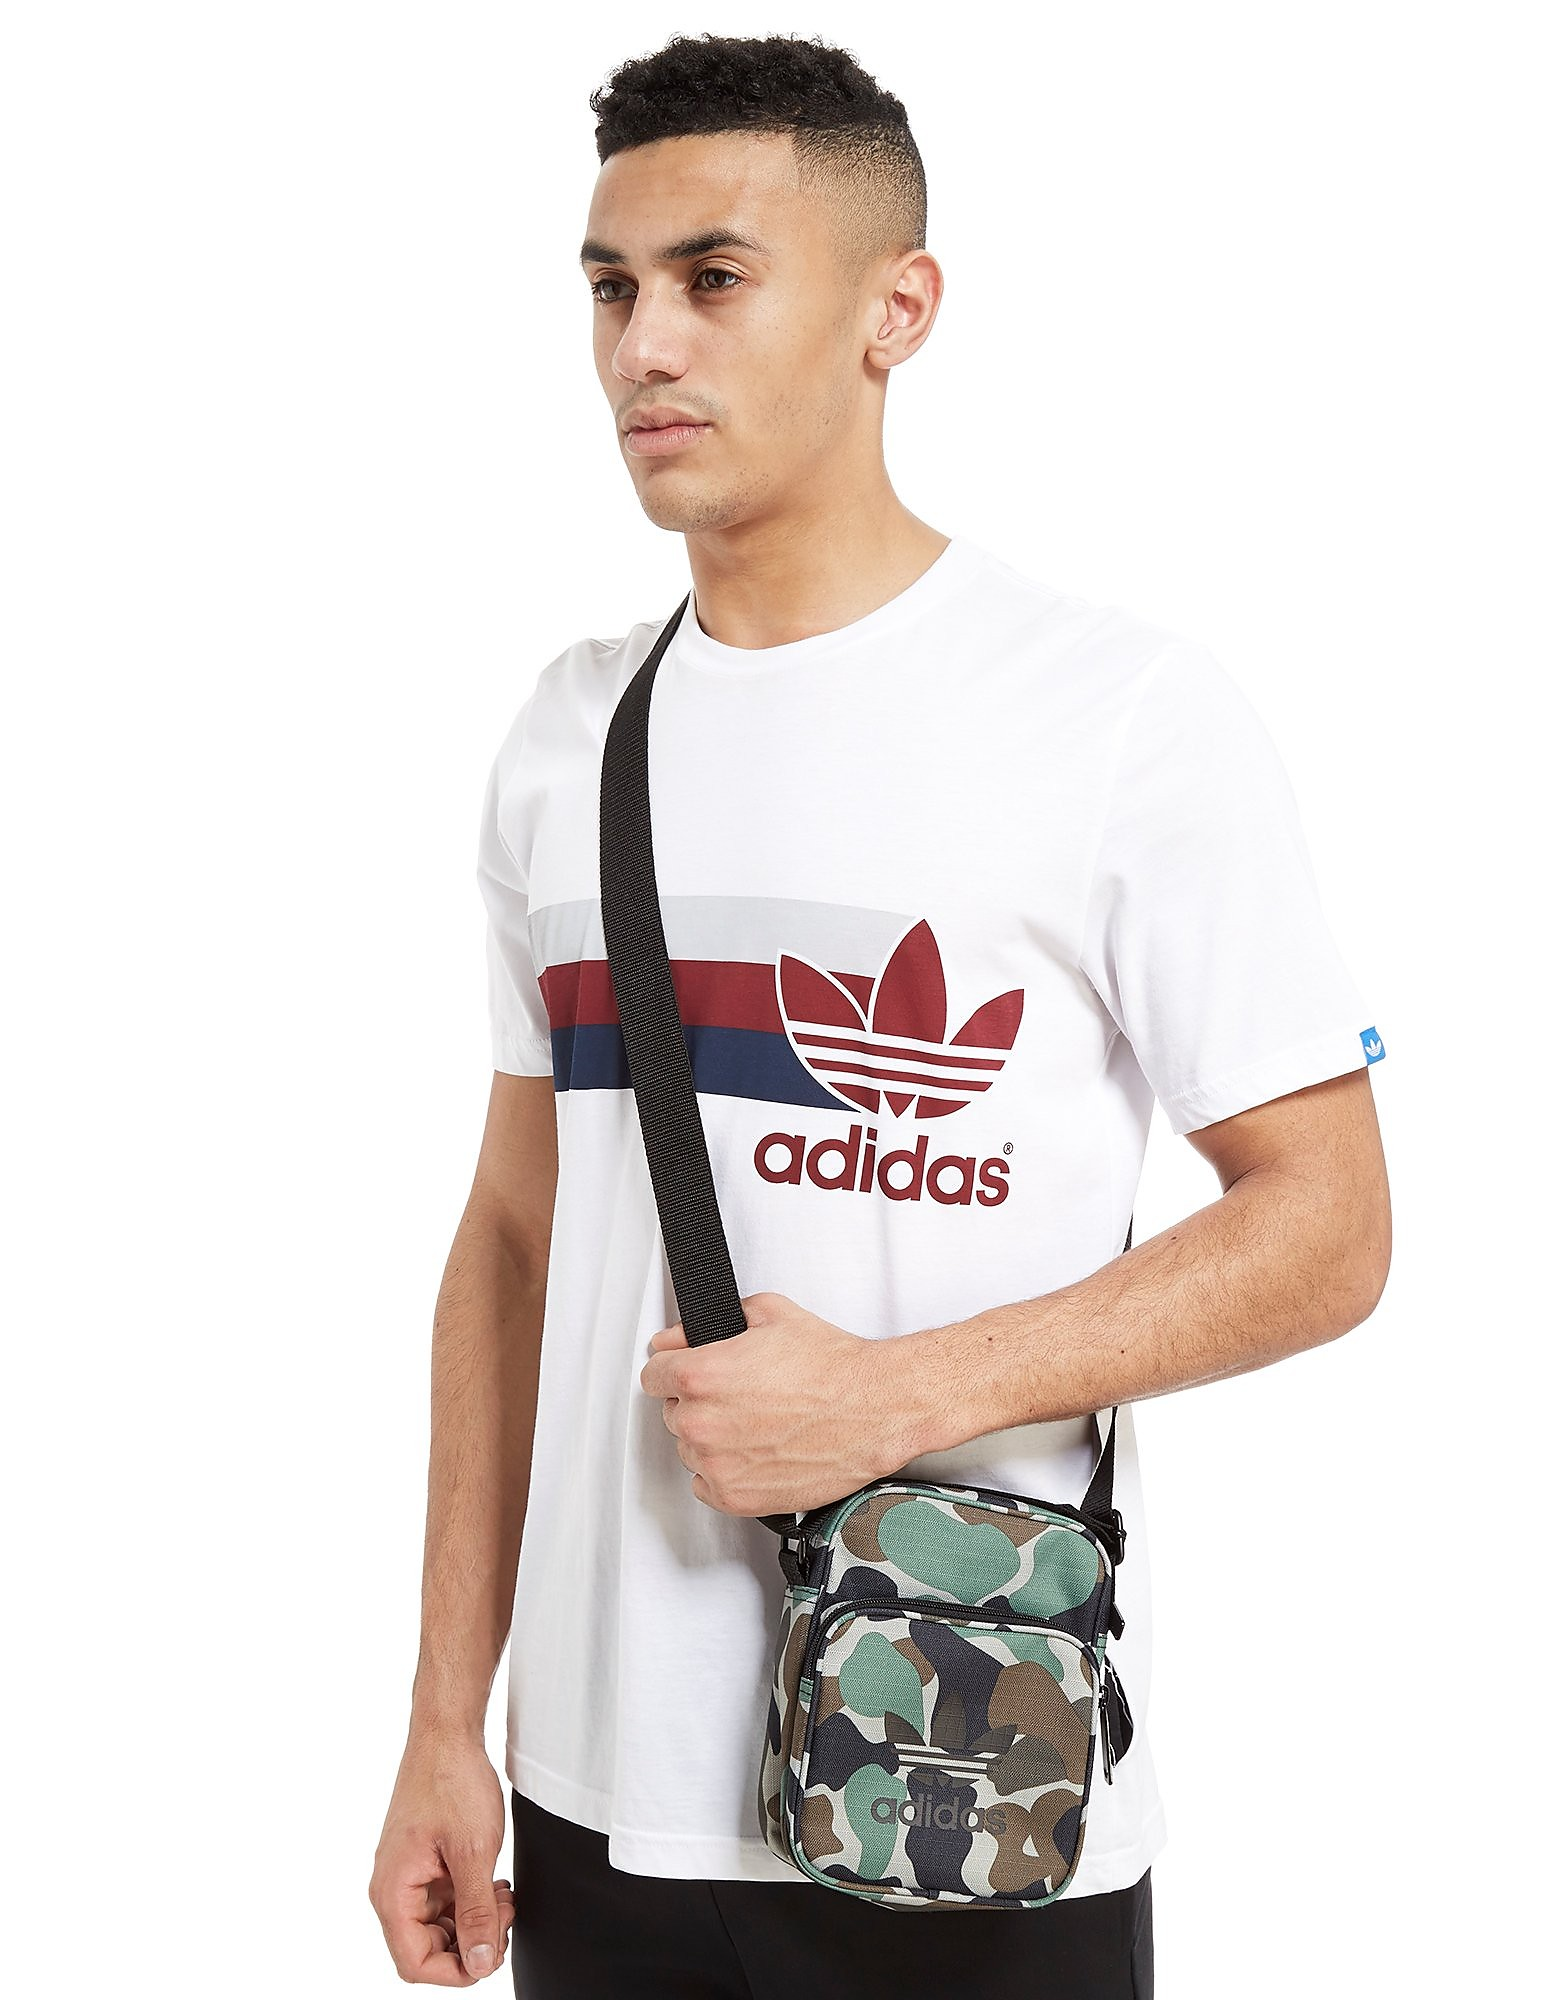 adidas Originals Mini Tasche